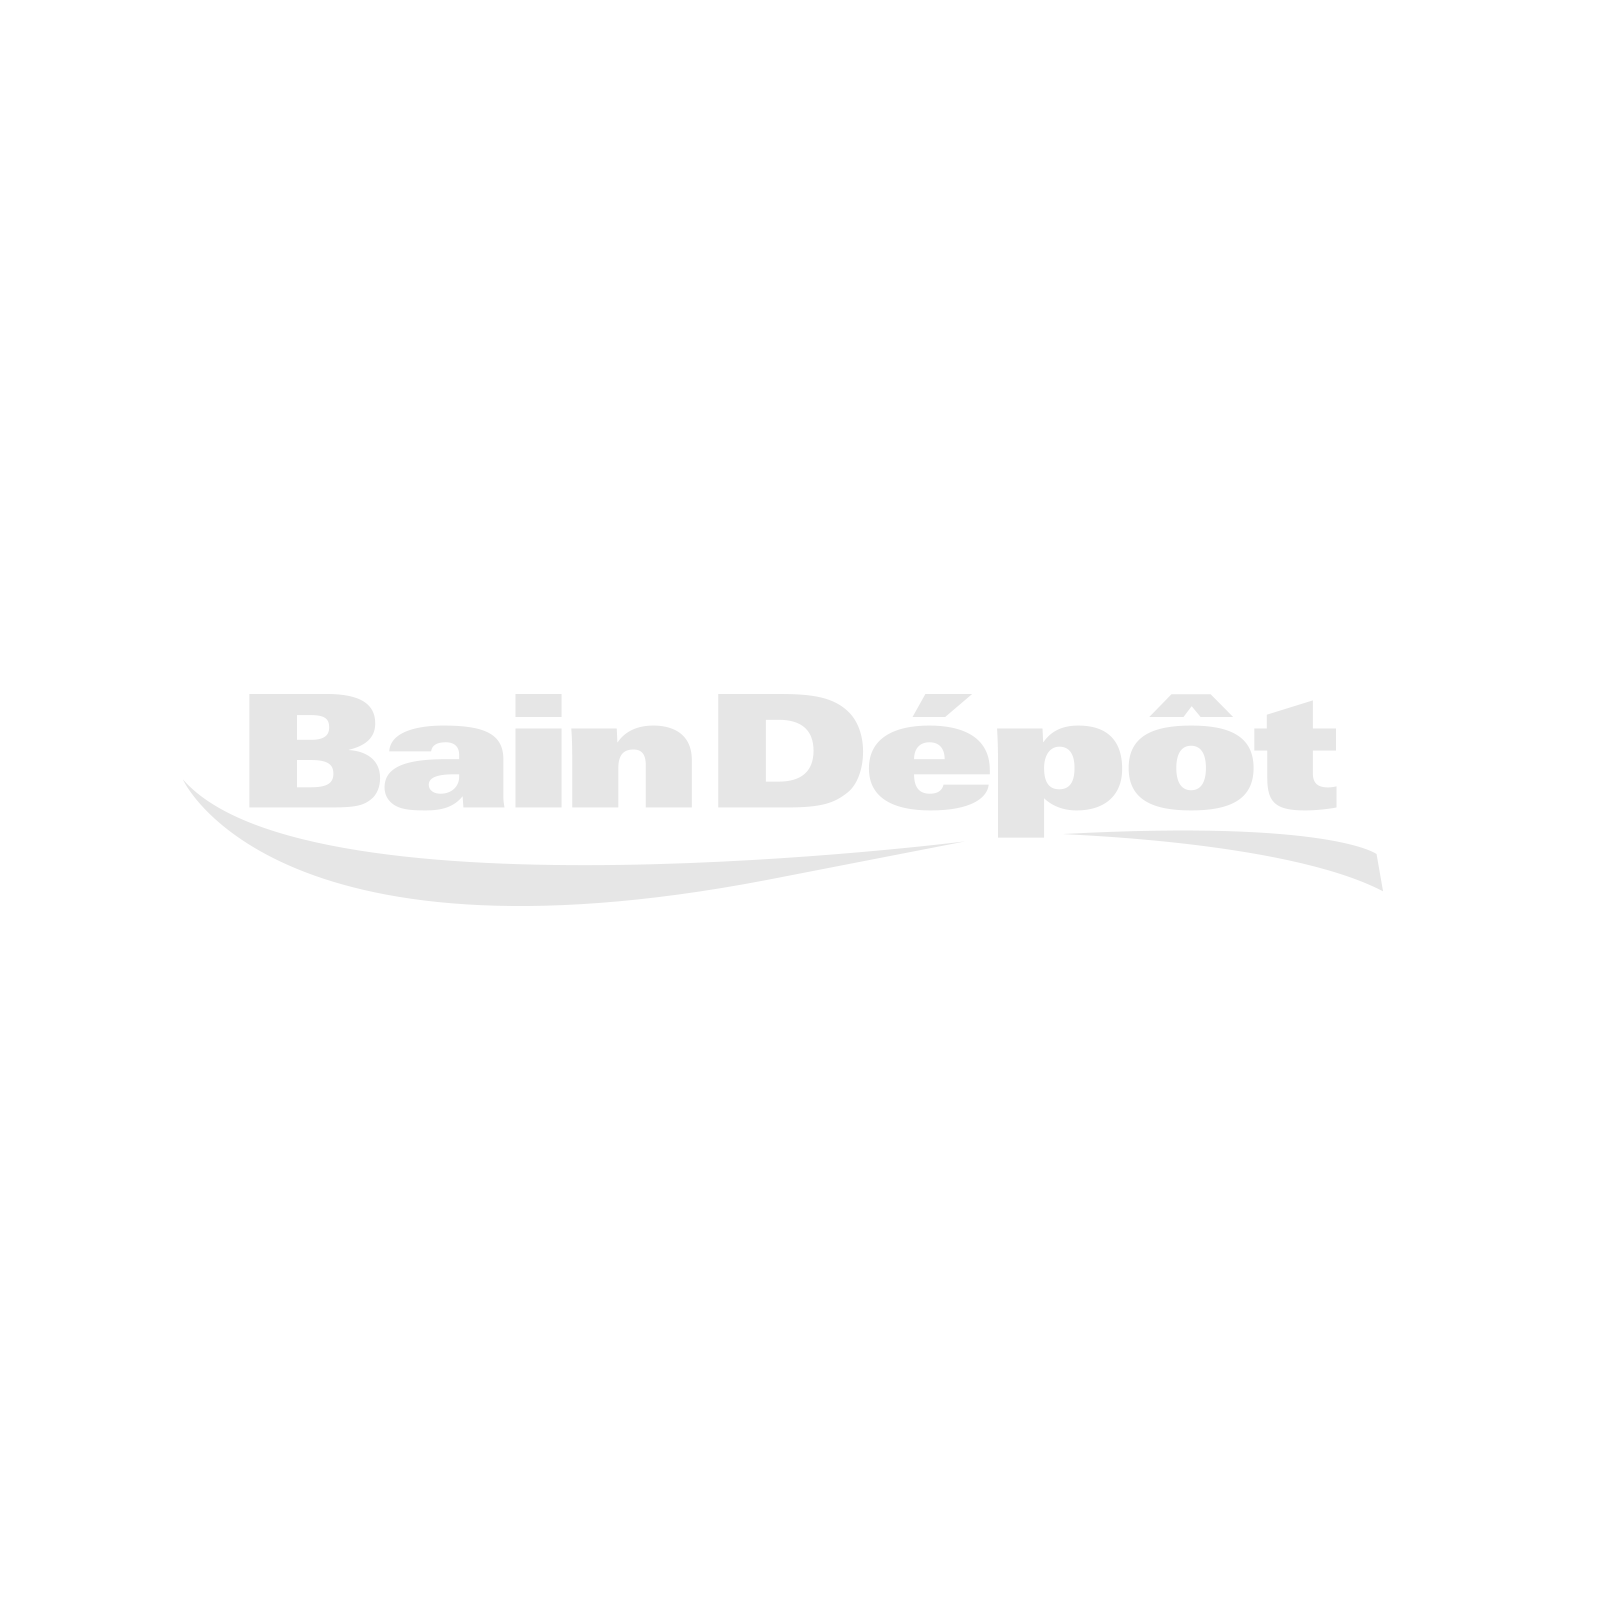 Brushed nickel kitchen faucet with pull-out spout